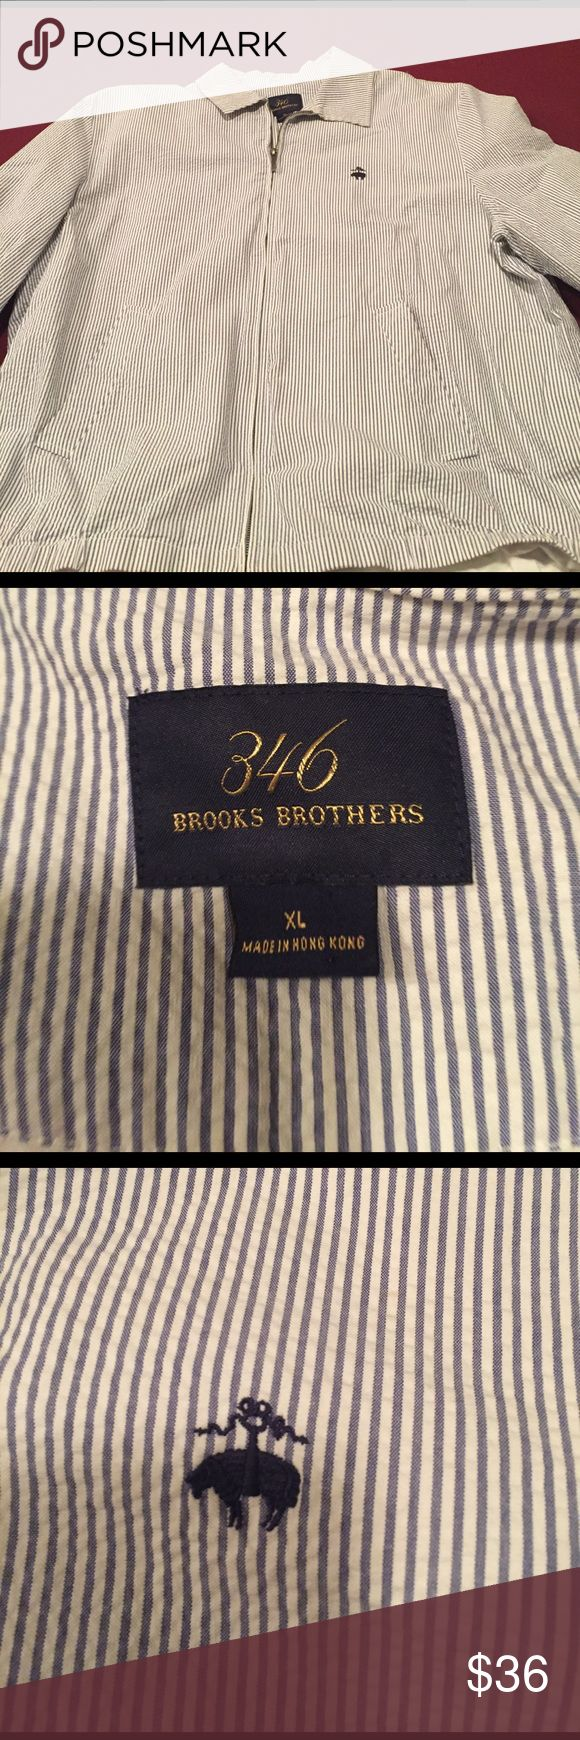 Men's Brooks Brothers Blue and White Jacket XL Men's Brooks Brothers zip up blue and white gingham zip up Jacket. Two pockets in front. Brand new without tags!!! Never worn size XL. For persons with distinguished taste. Brooks Brothers Jackets & Coats Lightweight & Shirt Jackets